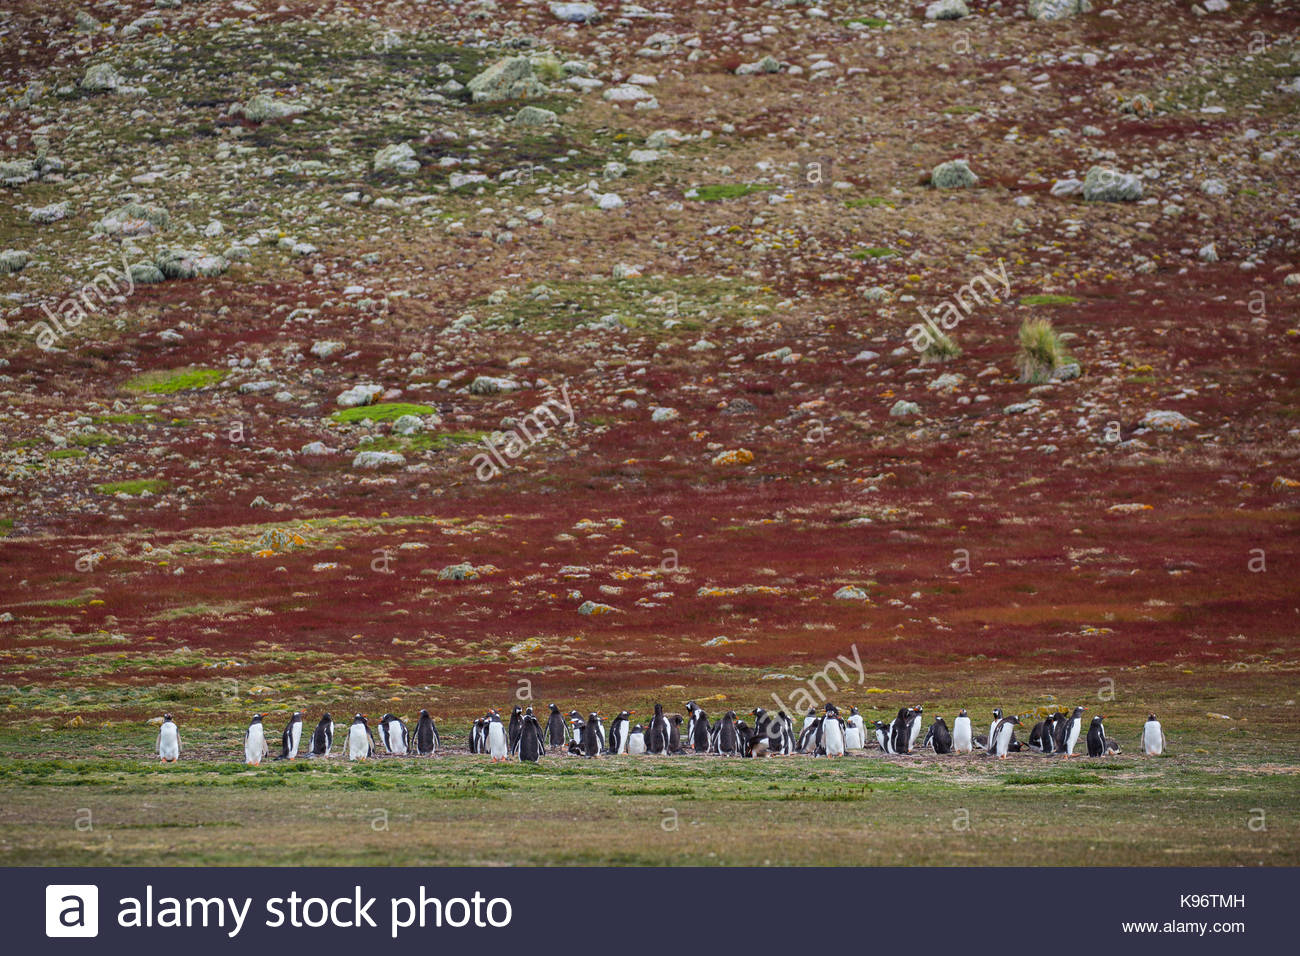 Penguins in the distance in front of a rolling red hill. - Stock Image